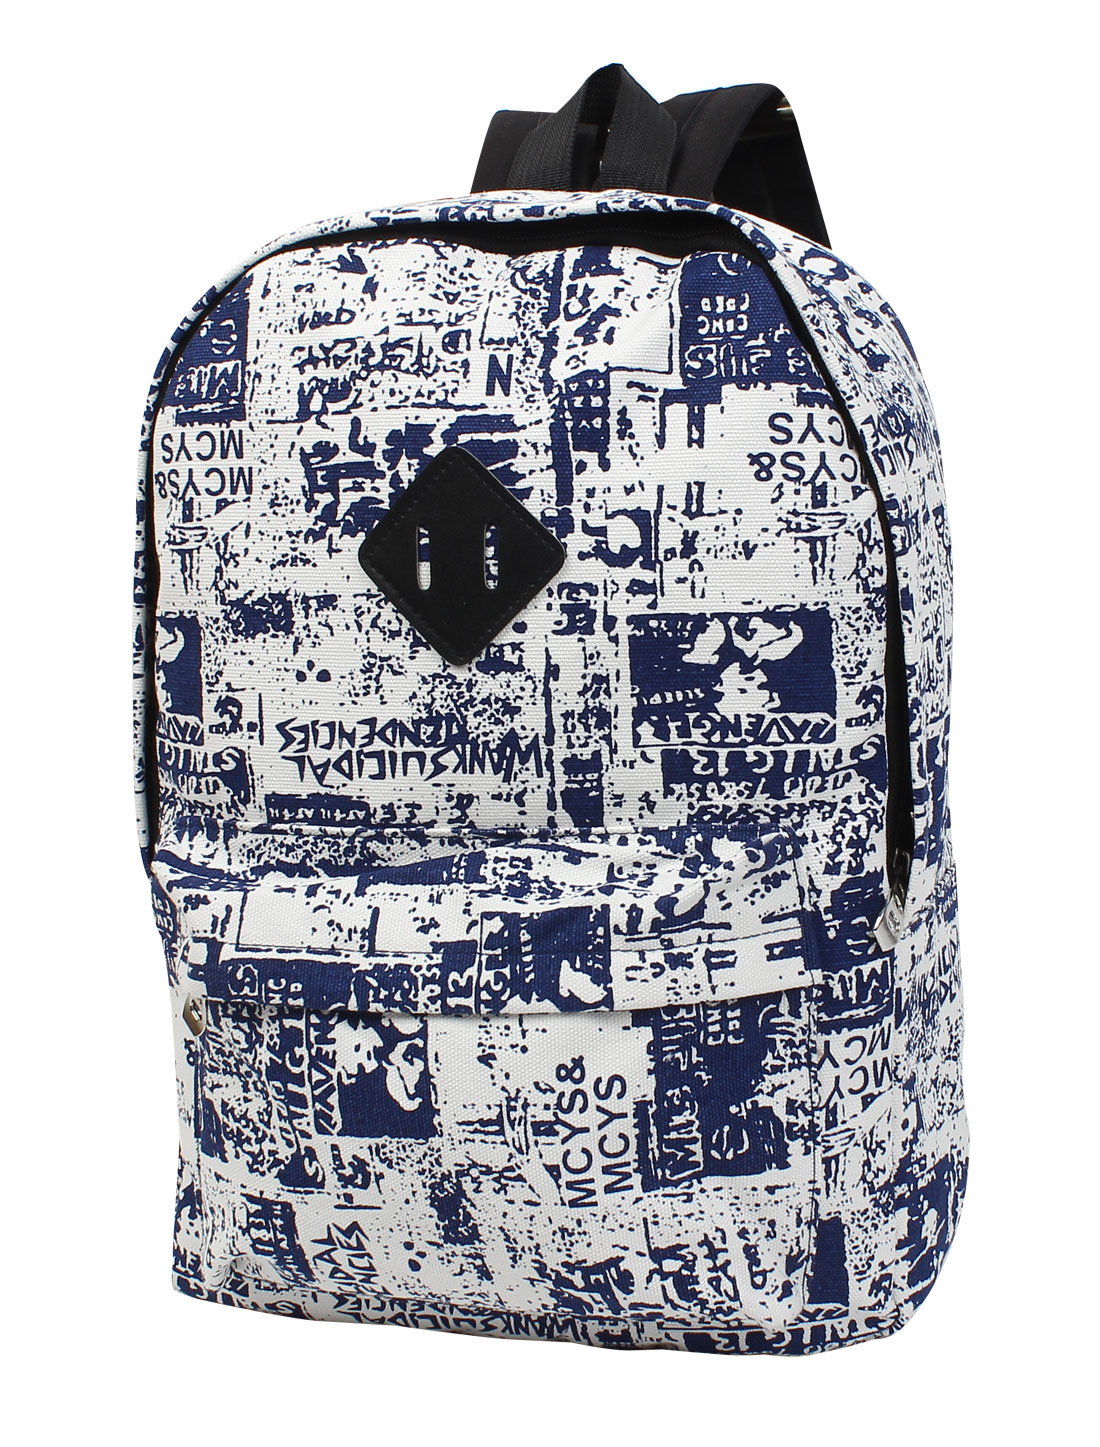 Unisex Graffiti Print Travel Casual Canvas Backpack School Bag Rucksack Blue